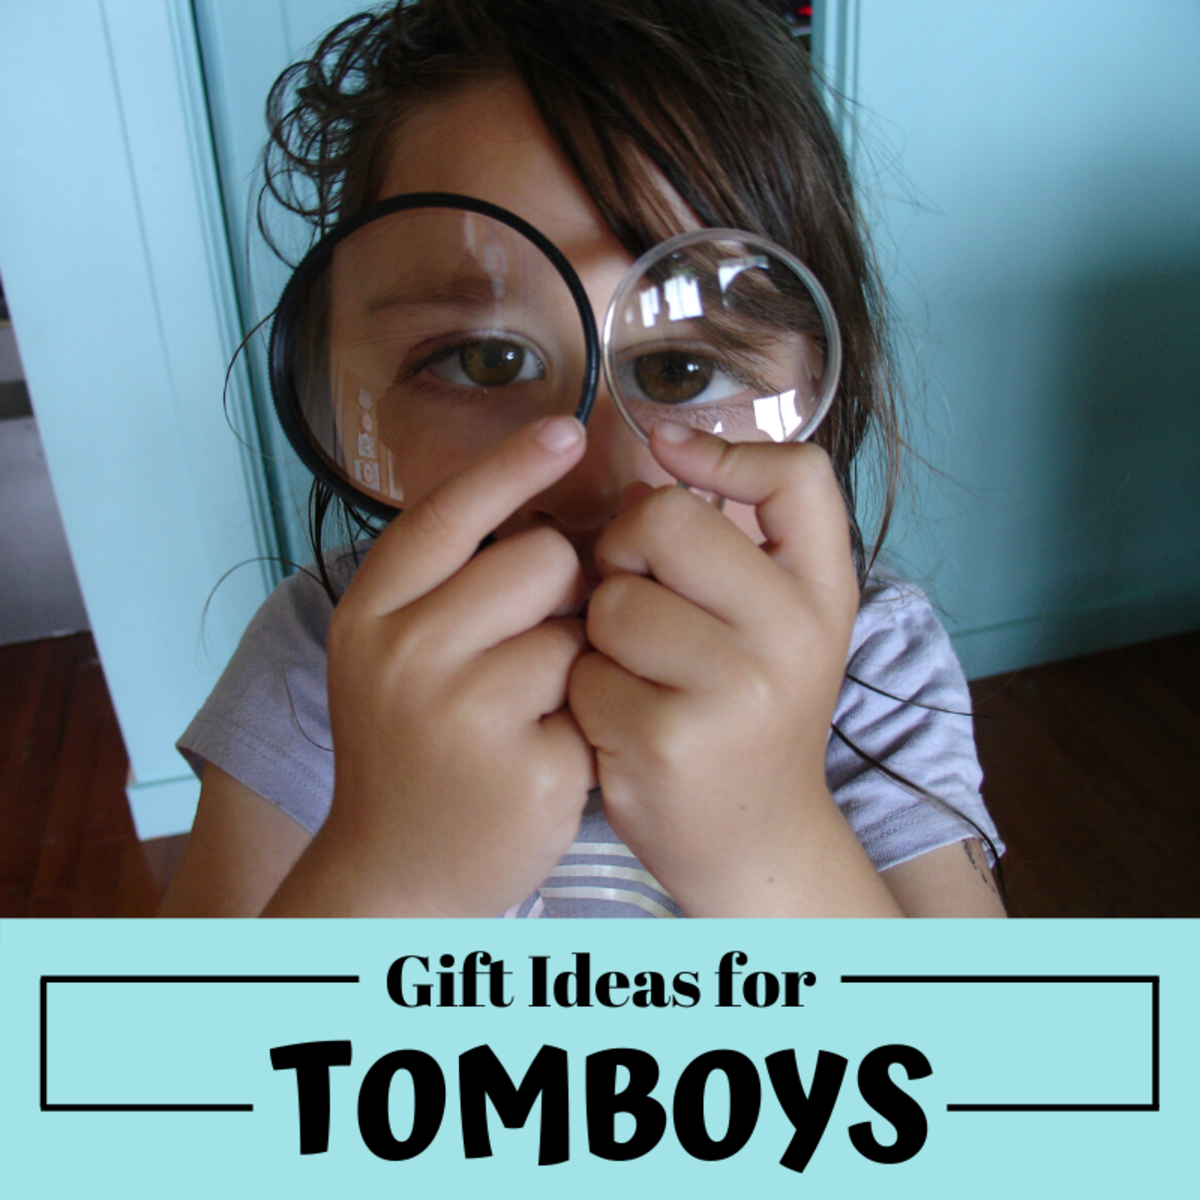 The Best Gifts for Tomboys (Gift Ideas for Not-So-Girly Girls)